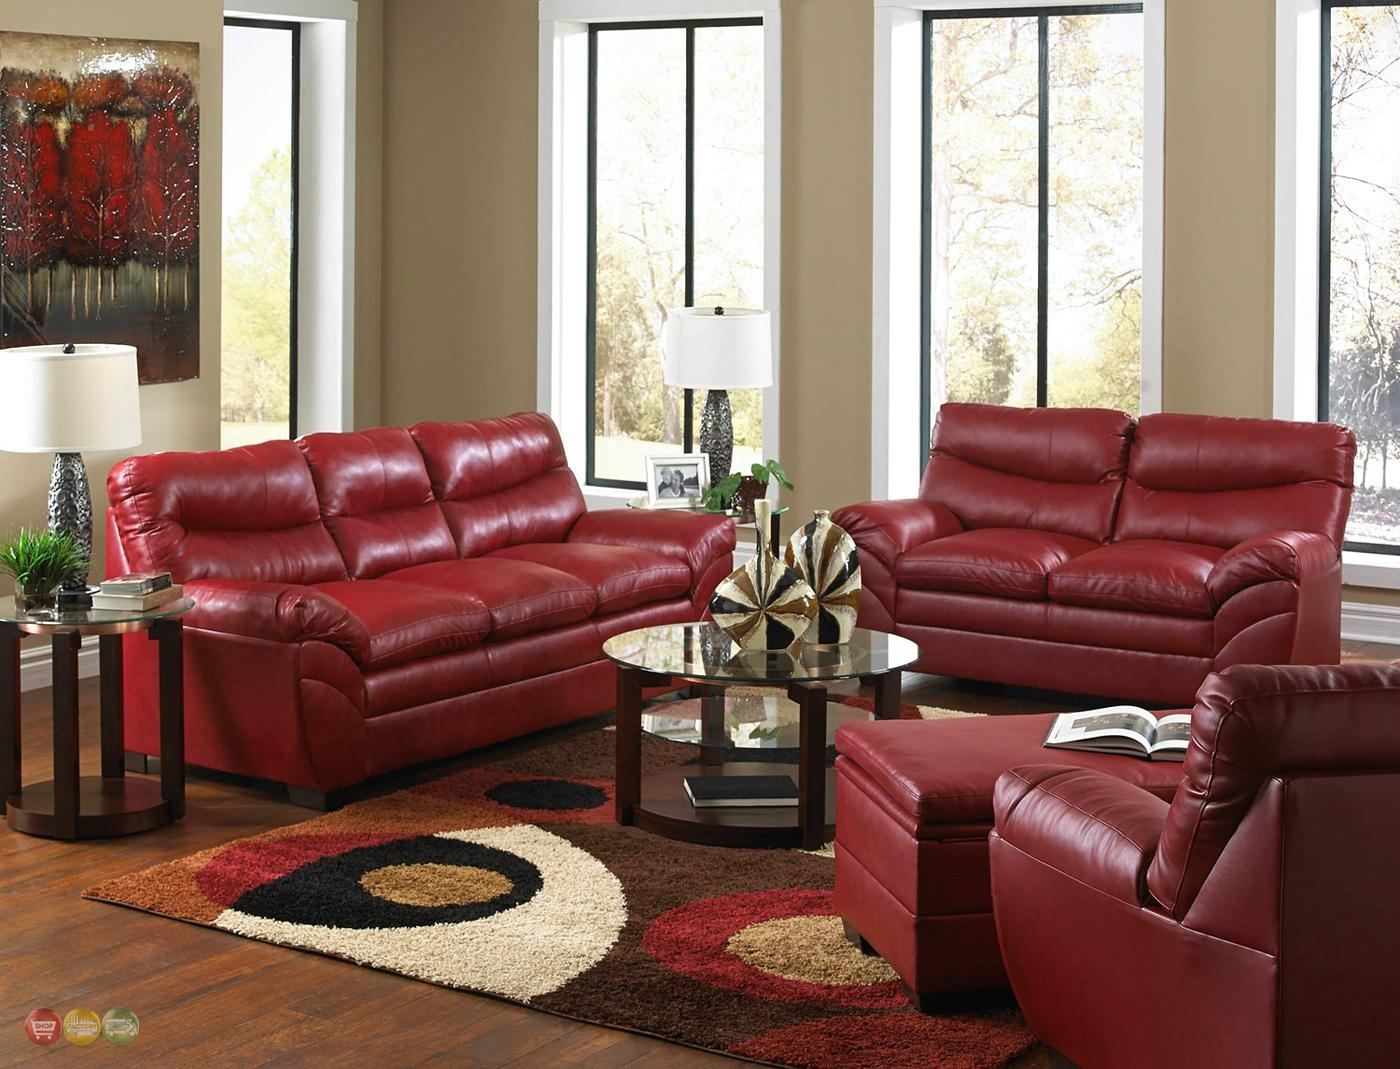 Burgundy Leather Sofa Set With Ideas Hd Gallery 37111 | Kengire With Burgundy Leather Sofa Sets (View 18 of 20)